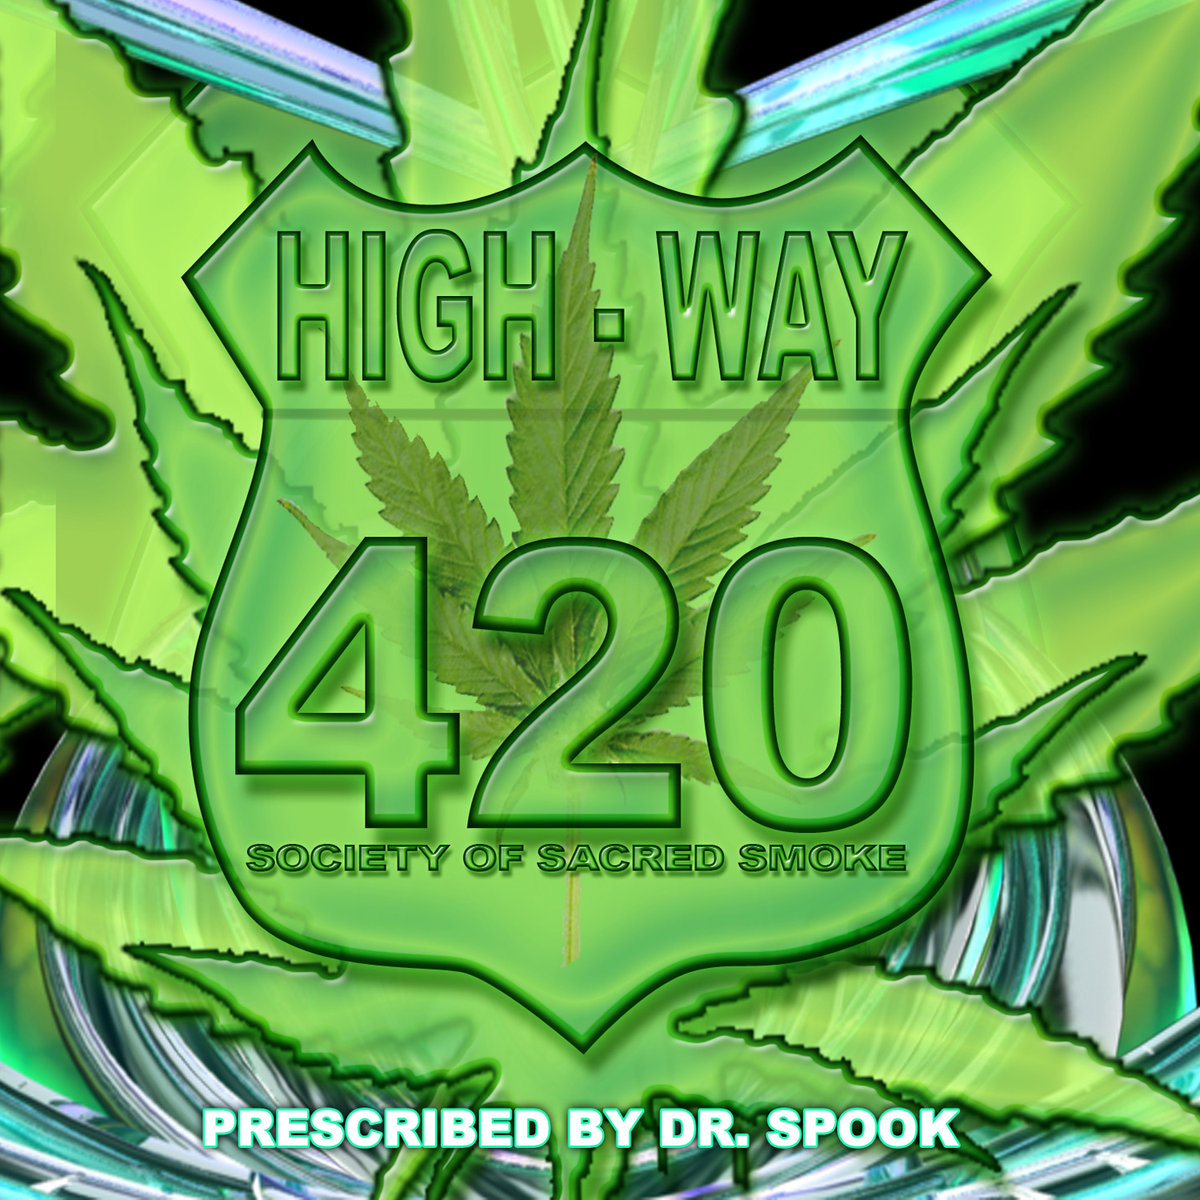 Vectro Electro - Potheadz @ 'Various Artists - High-Way 420: Society Of Sacred Smoke (Prescribed by Dr. Spook)' album (electronic, goa)